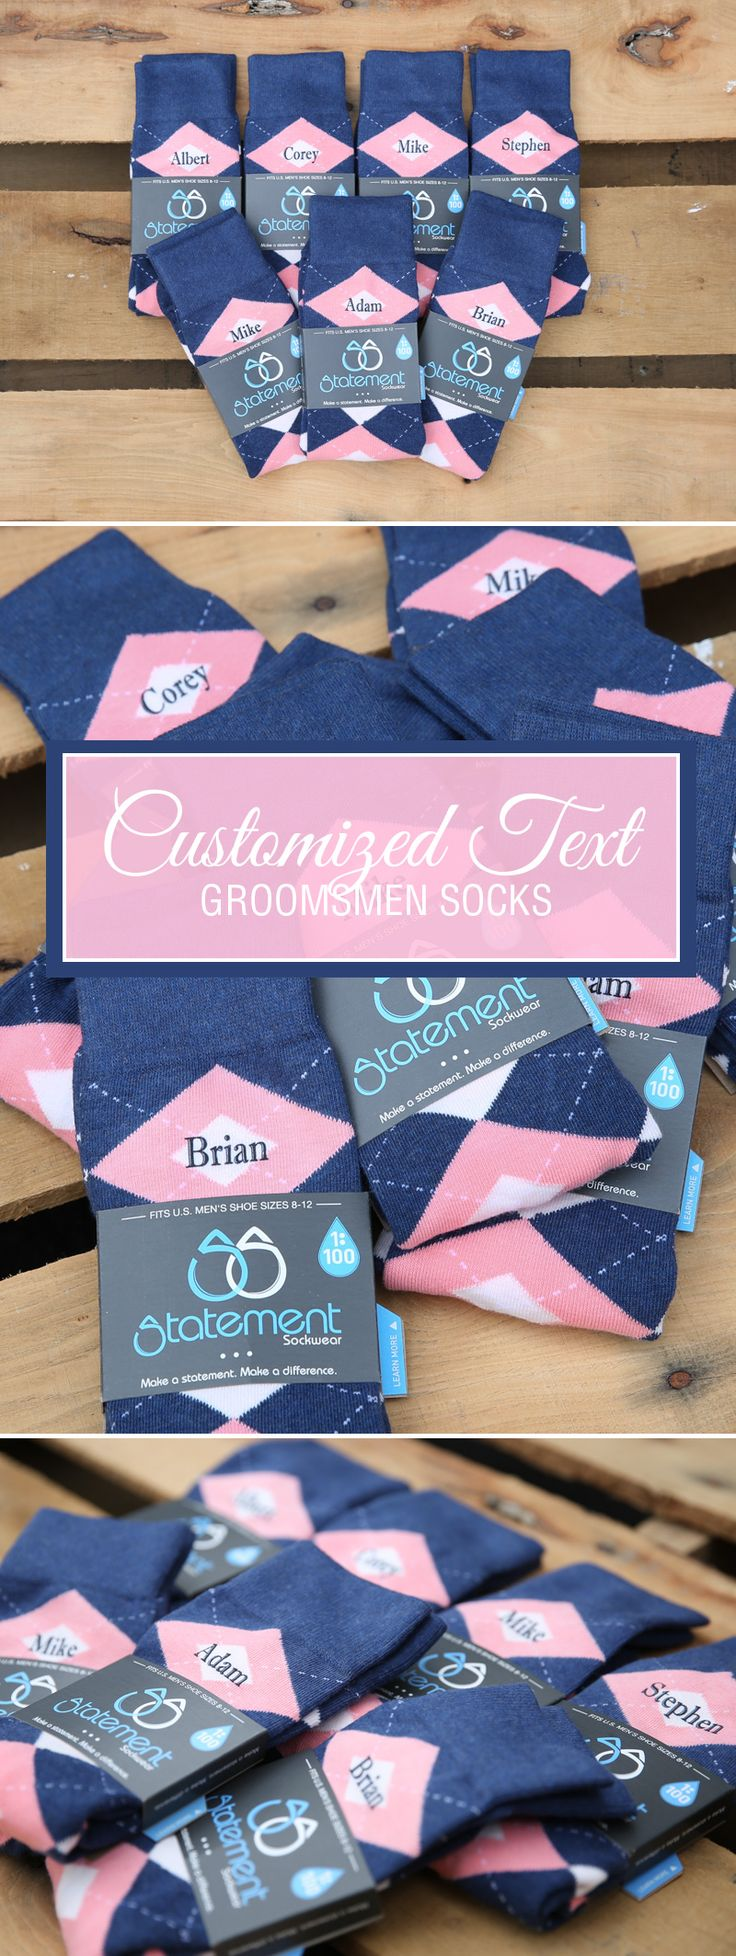 This is the timeless classic. Our flamingo blush petal pink and navy groomsmen dress socks are one of our personal favorites. The classy combination of navy and pink offers the perfect accessory to any gray or navy suit. Factor in custom text, dates or monograms, and you've got the ideal groomsman gift for the guys most important to you on your big day. Check out these flamingo blush petal pink navy argyle customized text groomsmen dress socks and more.